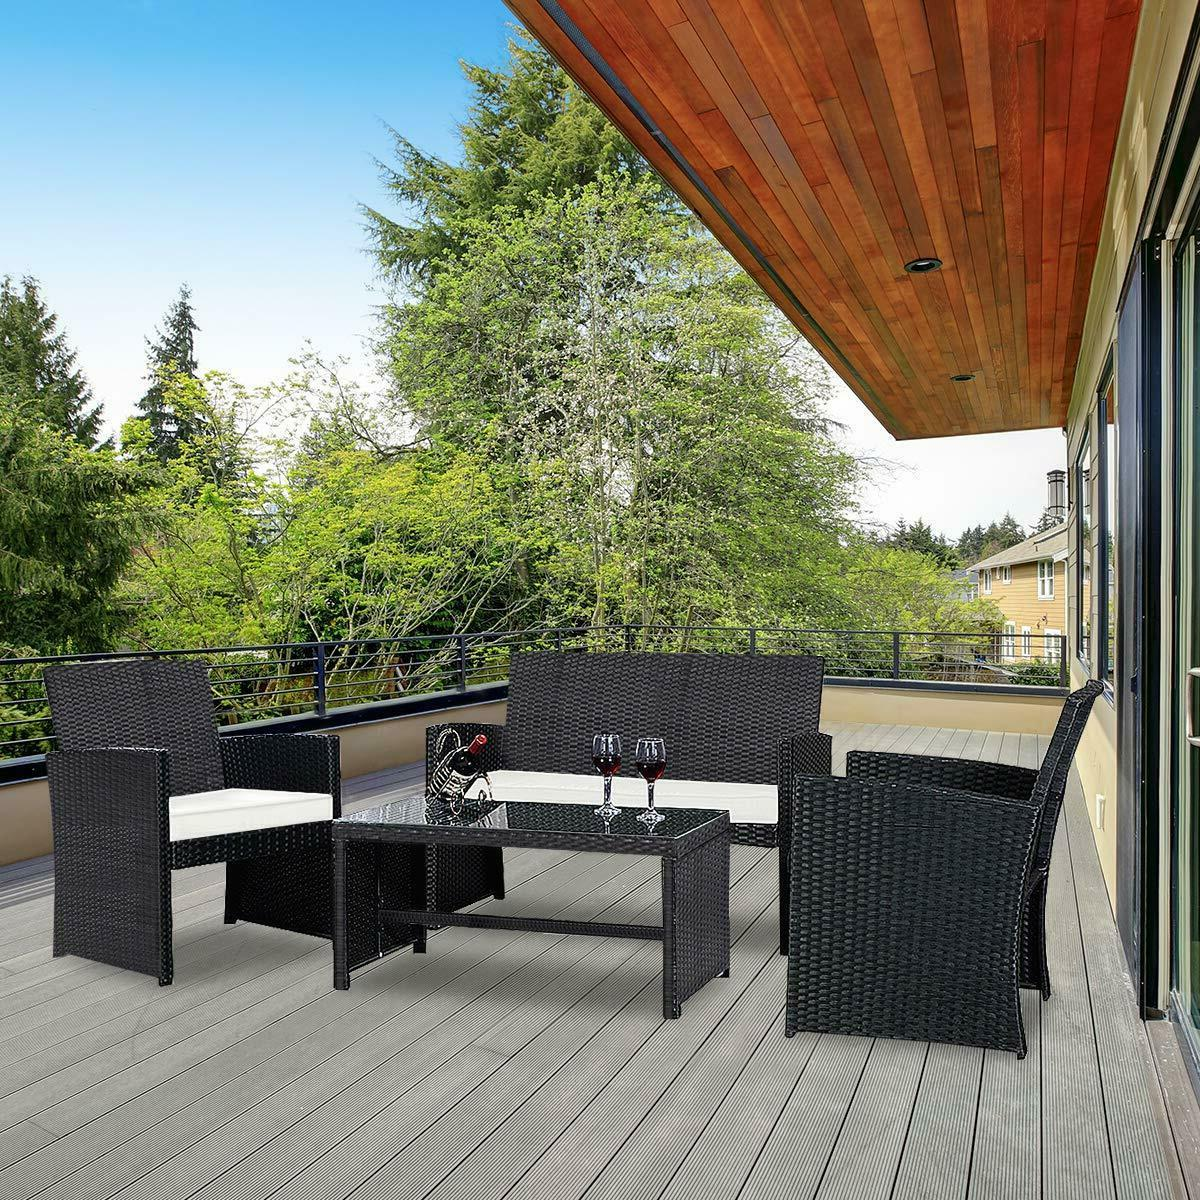 4pcs patio furniture set with coffee table